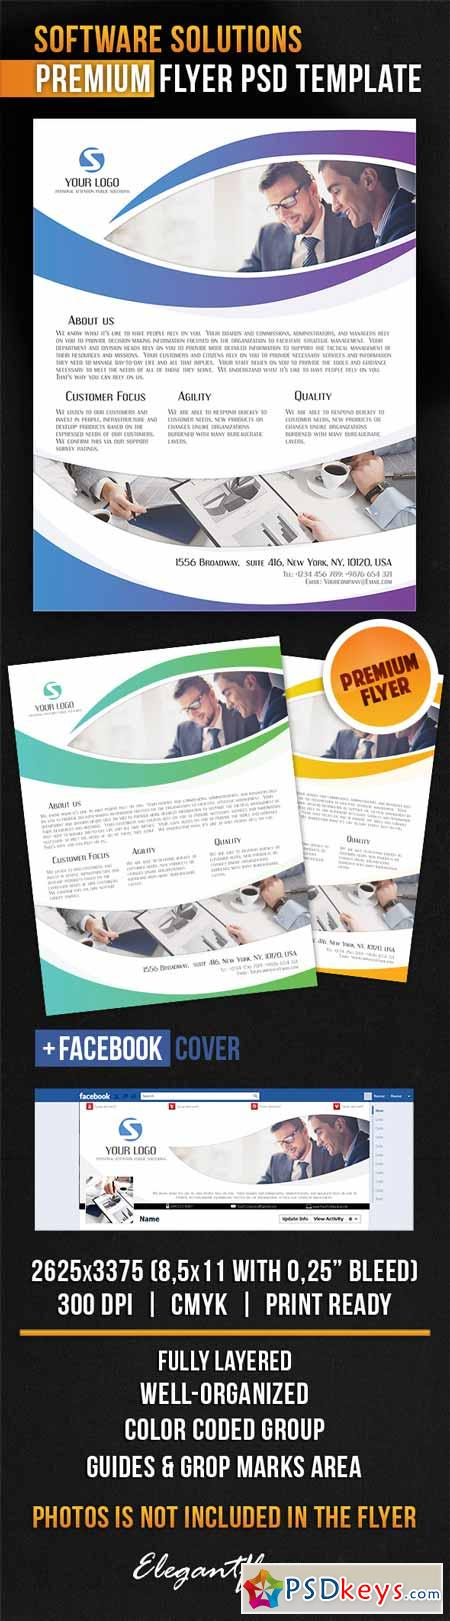 software brochure template - software solutions flyer psd template facebook cover